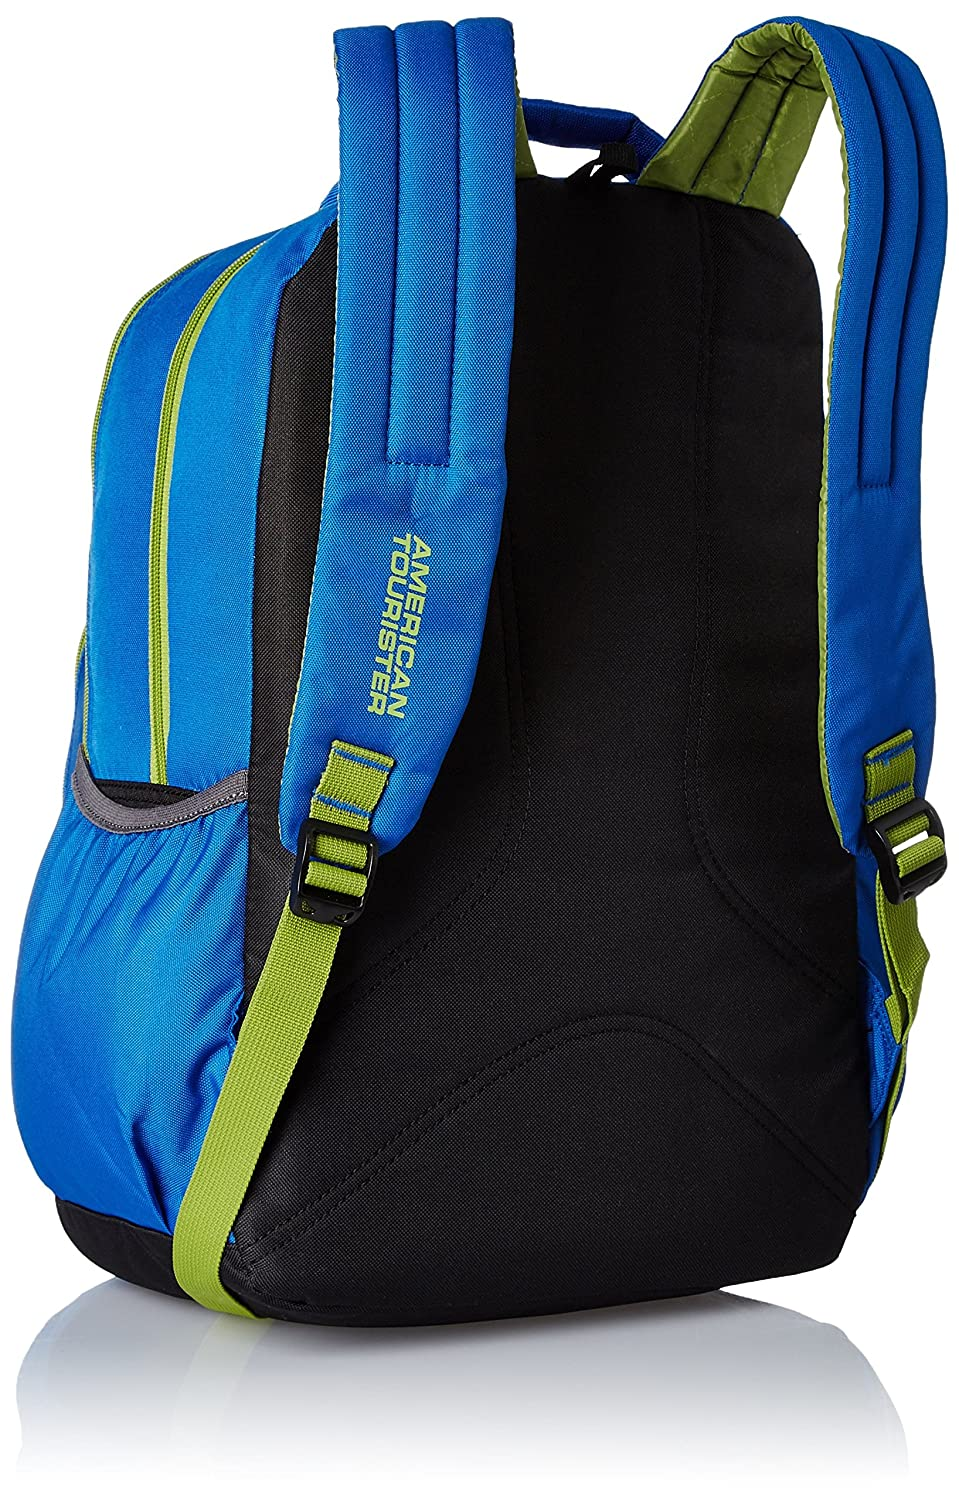 American Tourister 21 Lts Ebony Blue Casual Backpack (Ebony Backpack  02 8901836132724)  Amazon.in  Bags 8c43281858f26